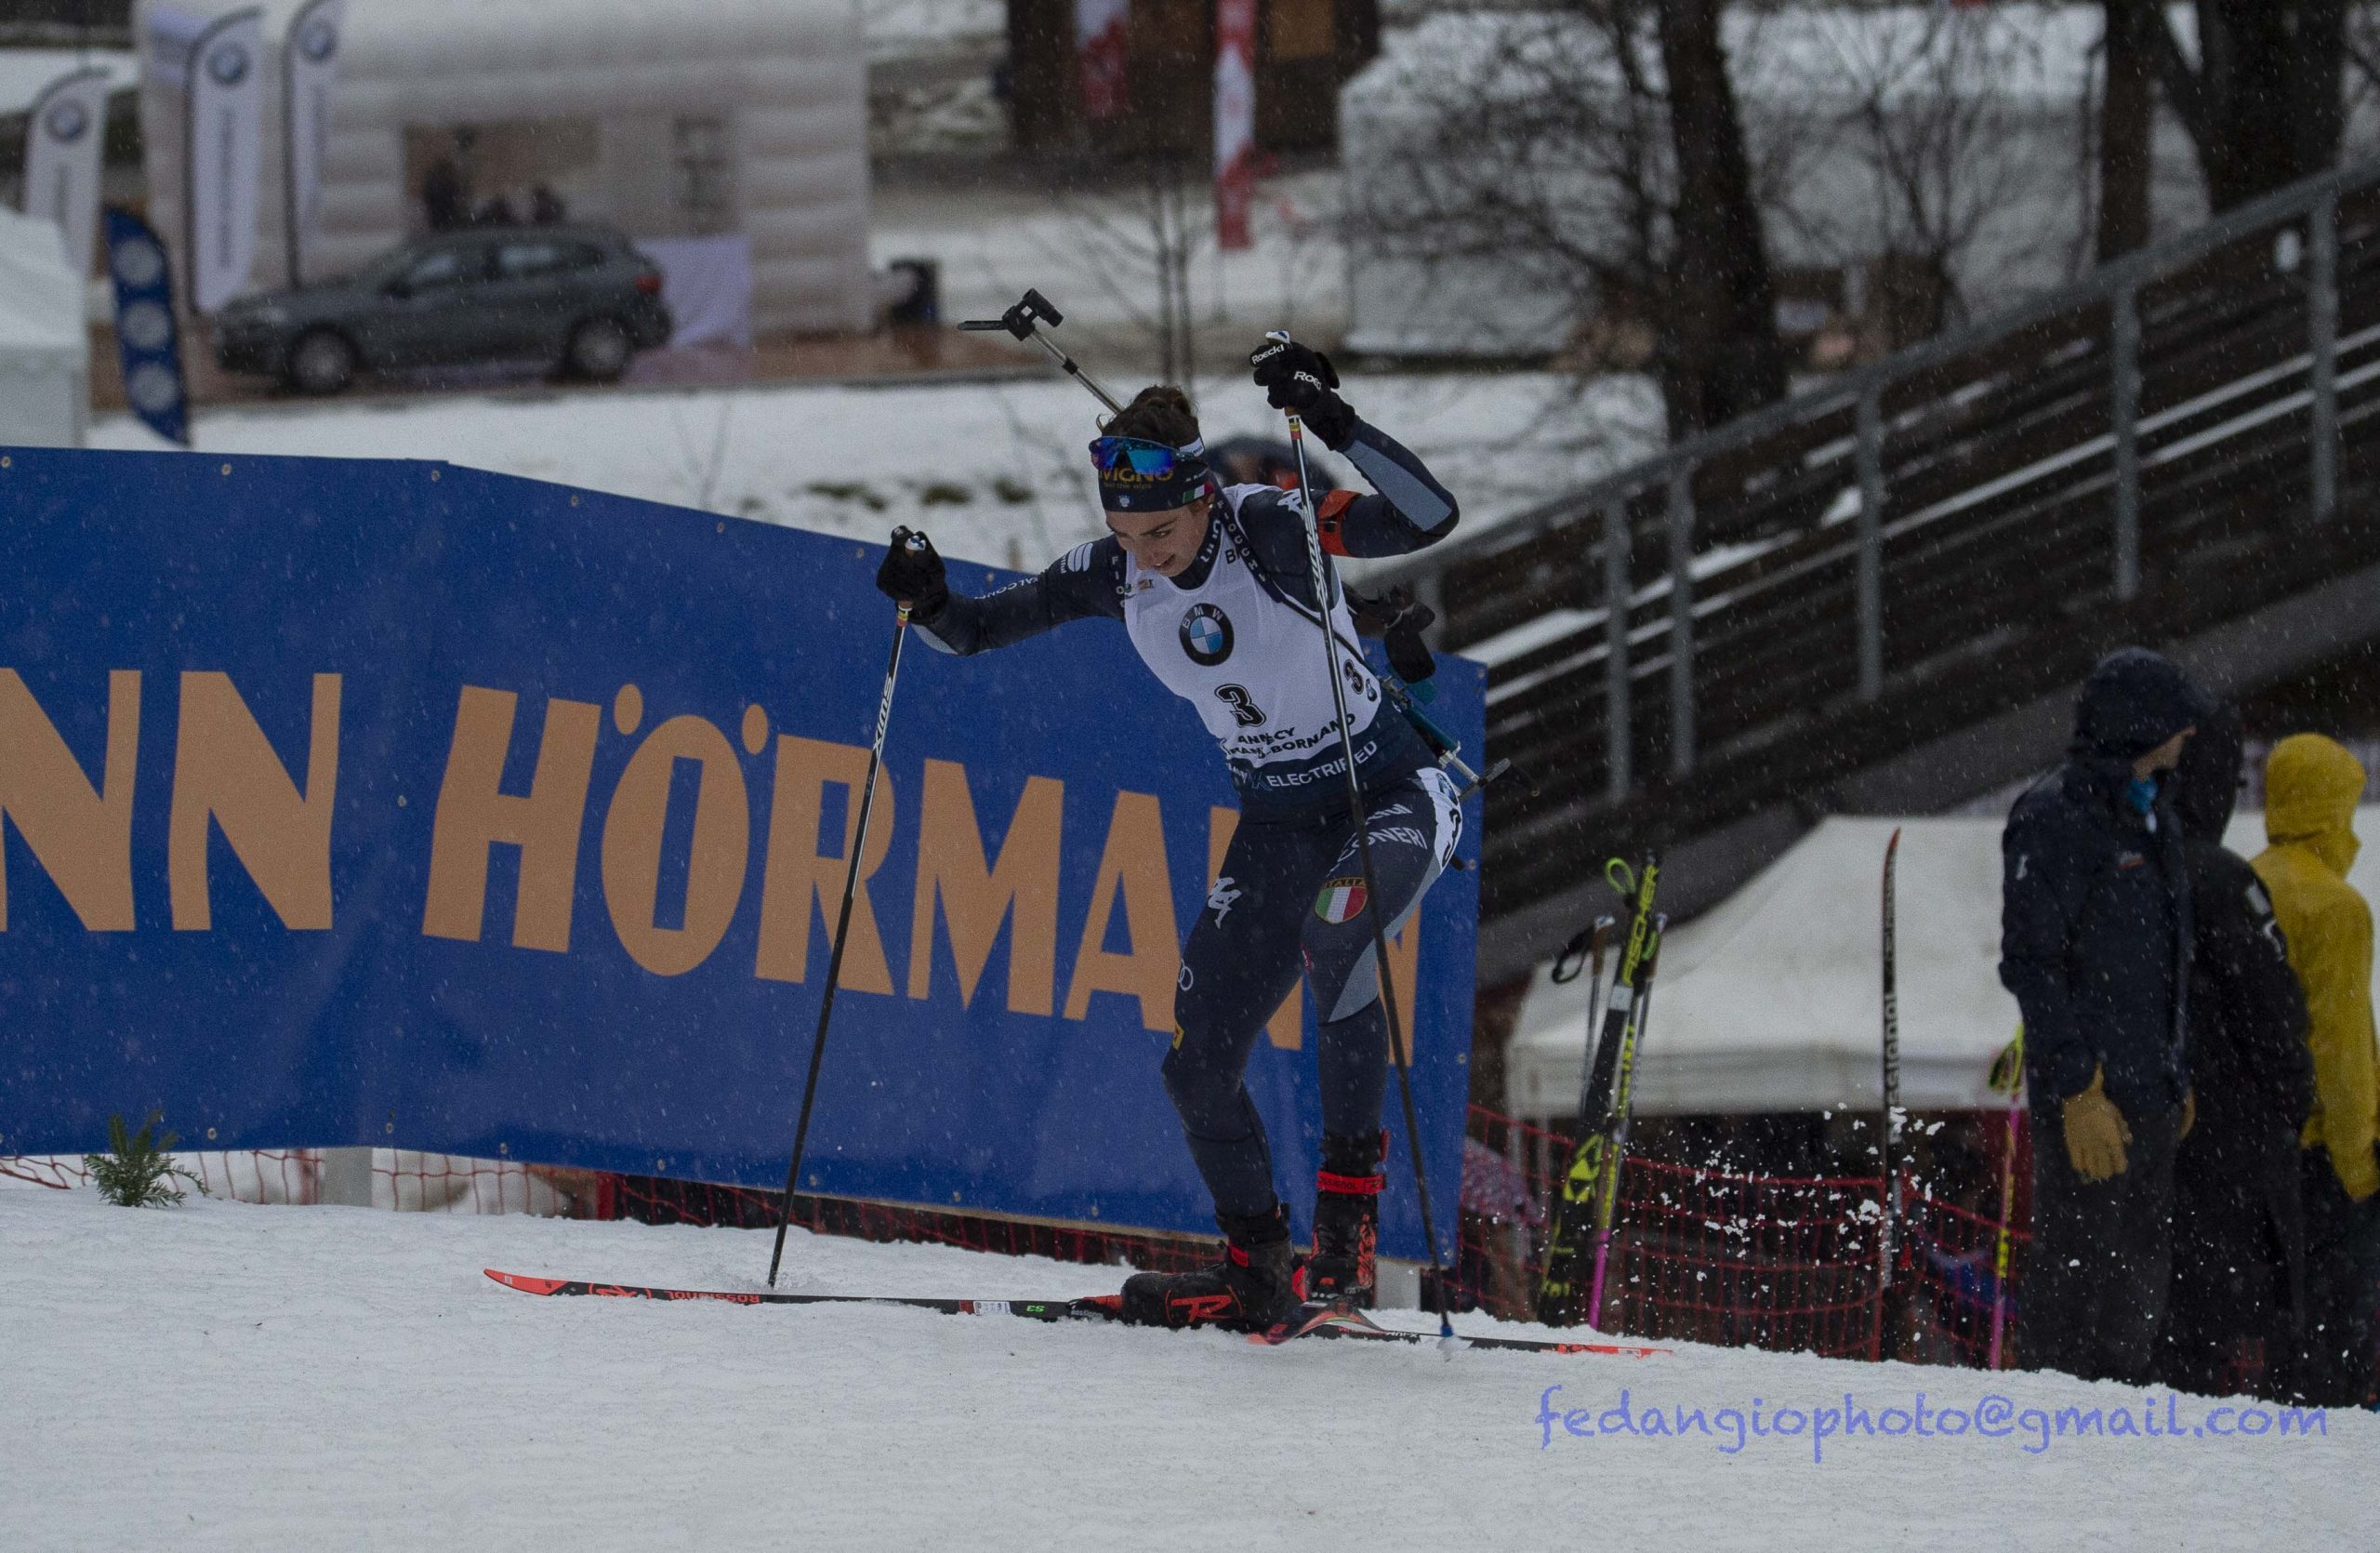 biathlon-Vittozzi-14-fandangio-photo-scaled.jpg